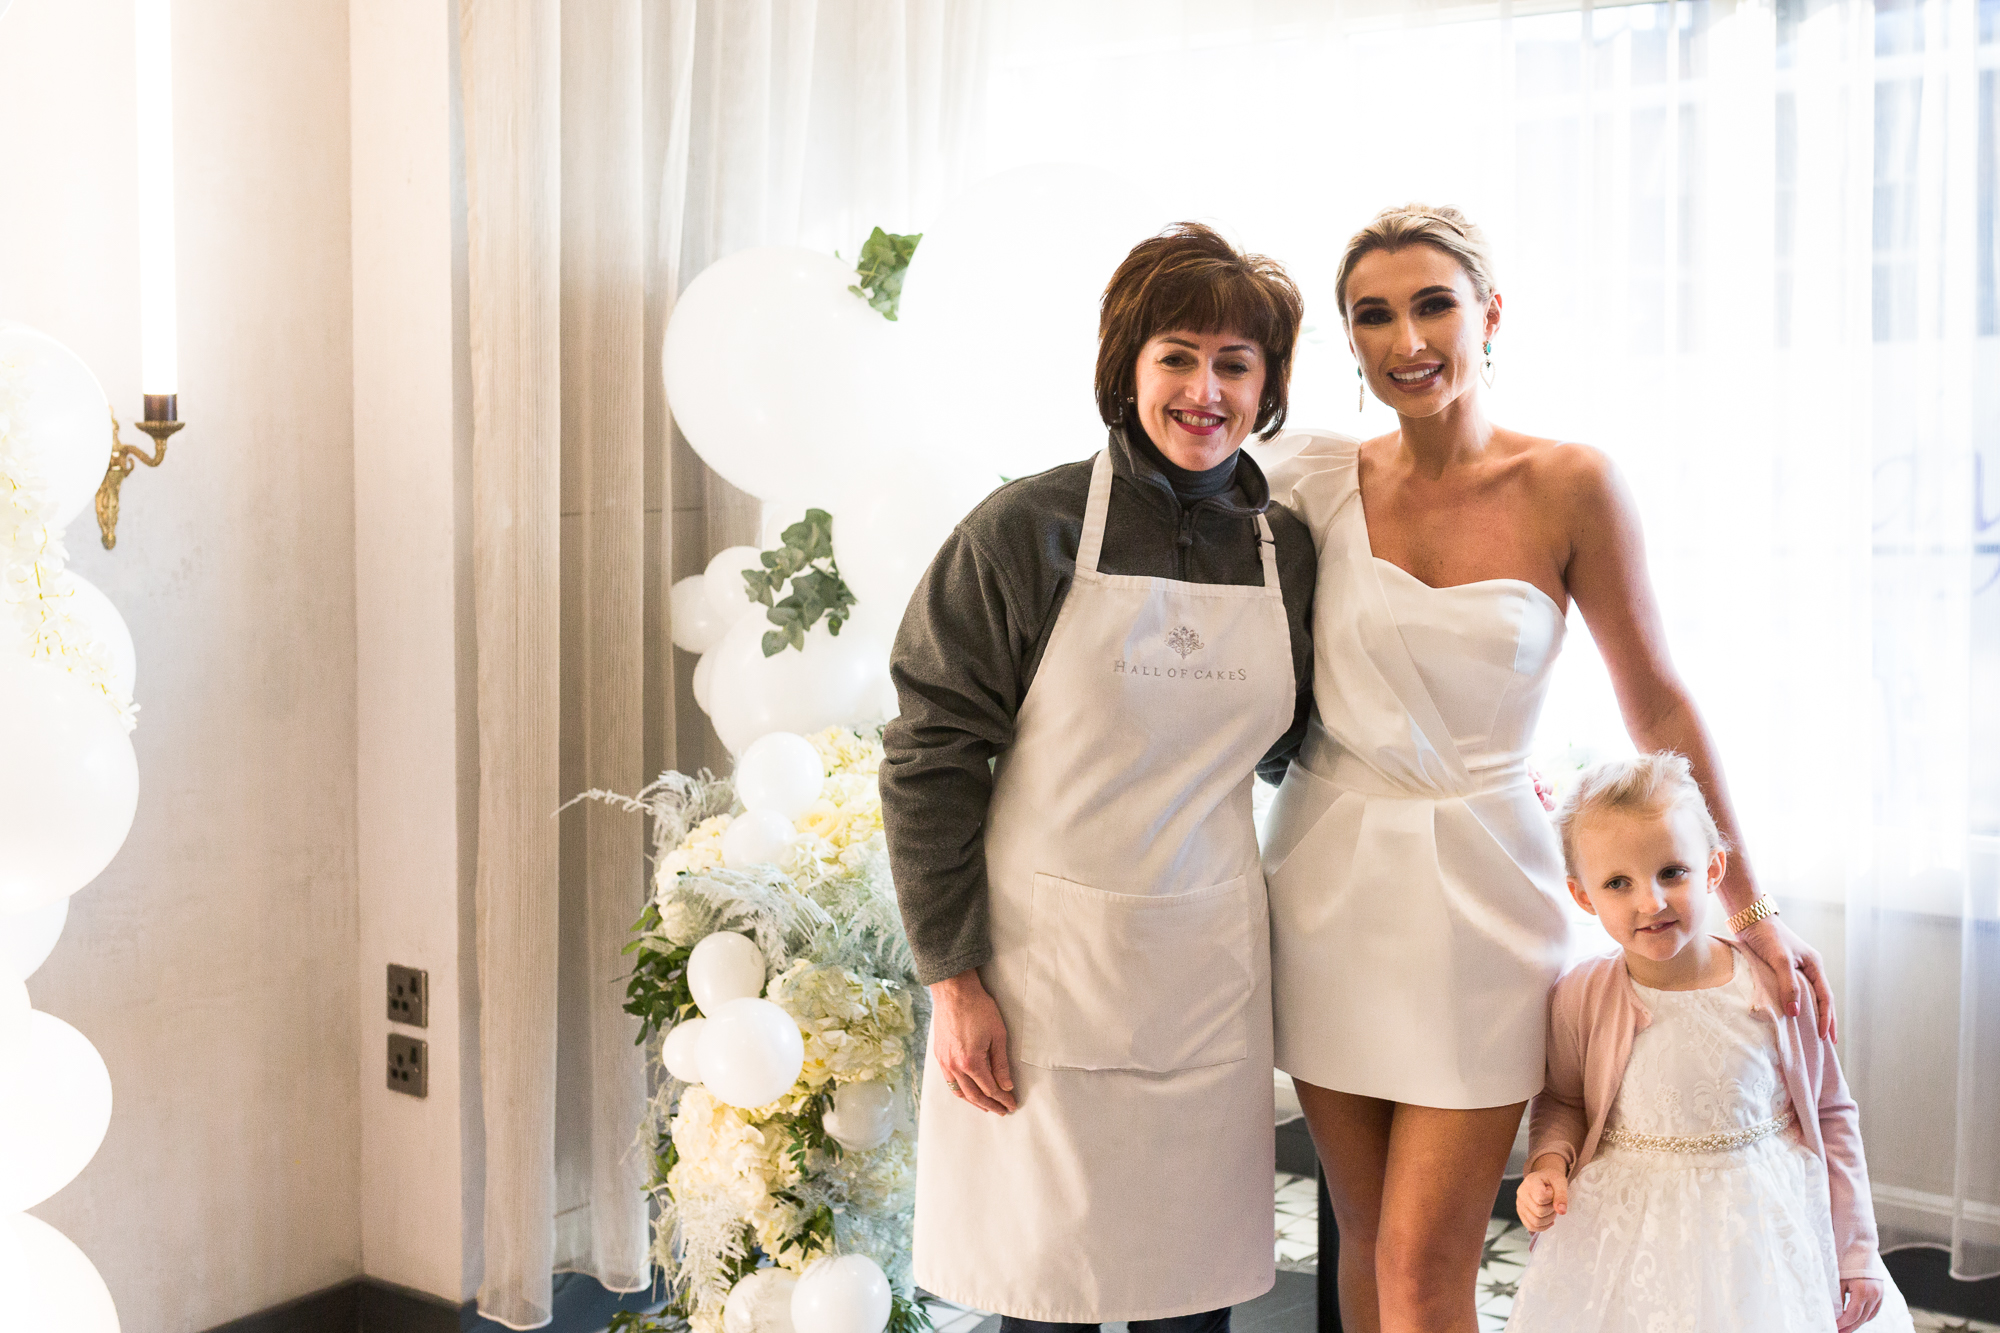 Billie Faiers Wedding shower party, covered by OK! Magazine, and ITV 2